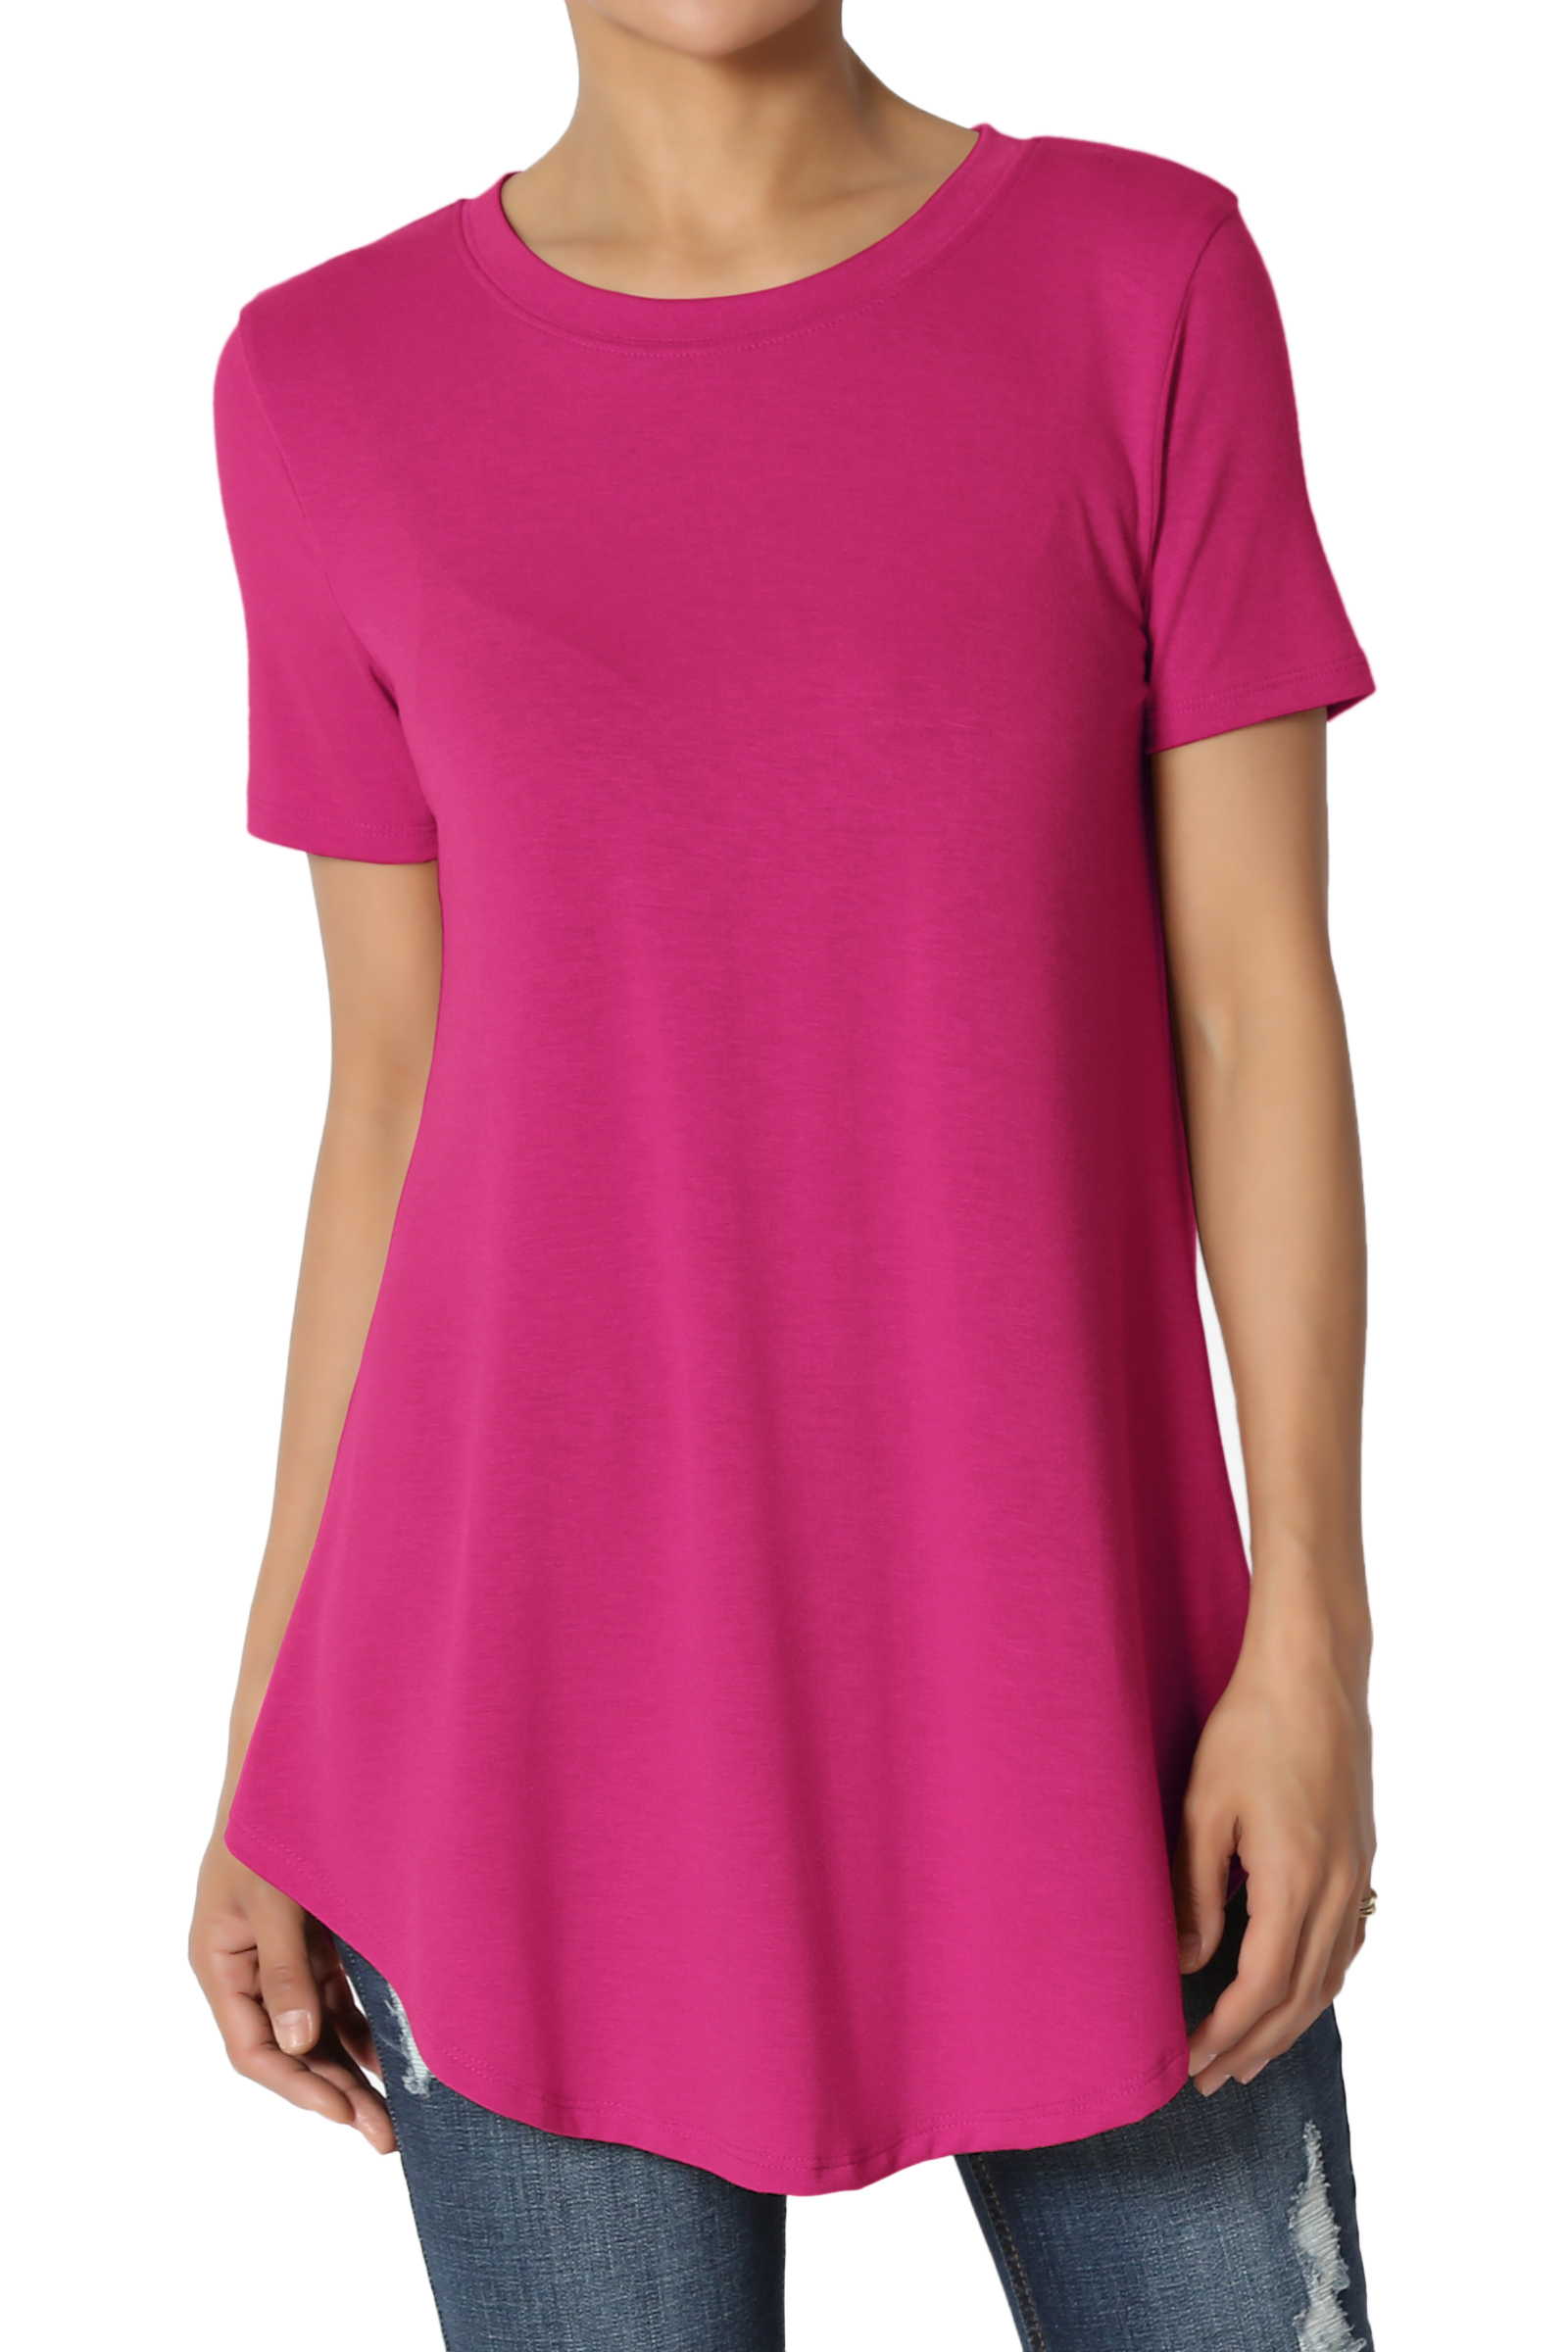 TheMogan Women's S~3XL Basic Crew Neck Round Hem Short Sleeve Draped Jersey Tee